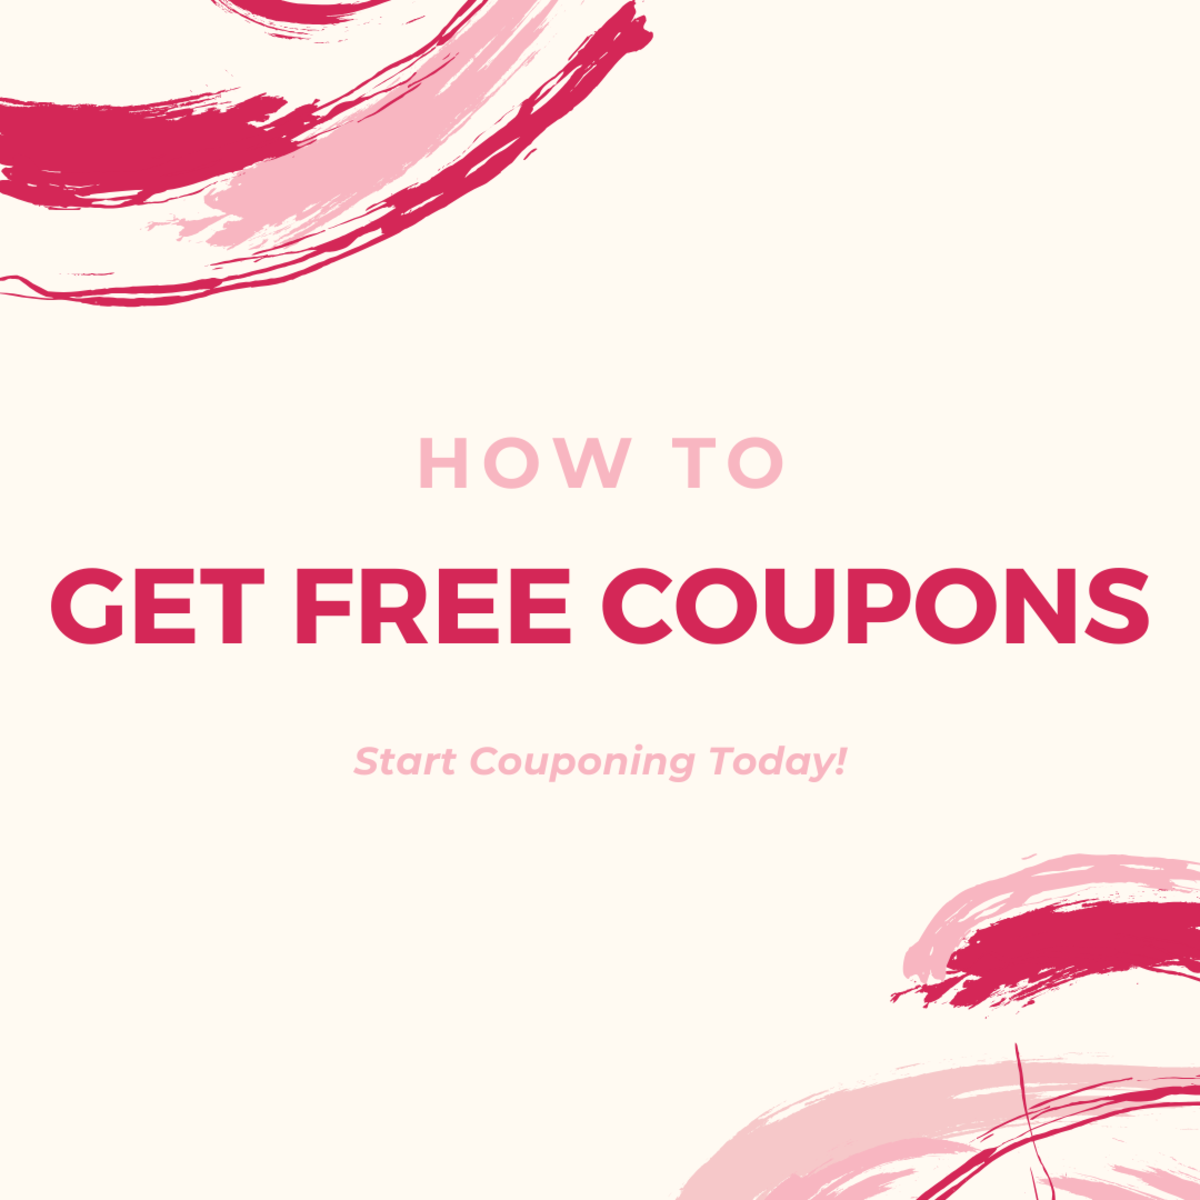 Coupon Mom: How to Get Free Coupons in the Mail